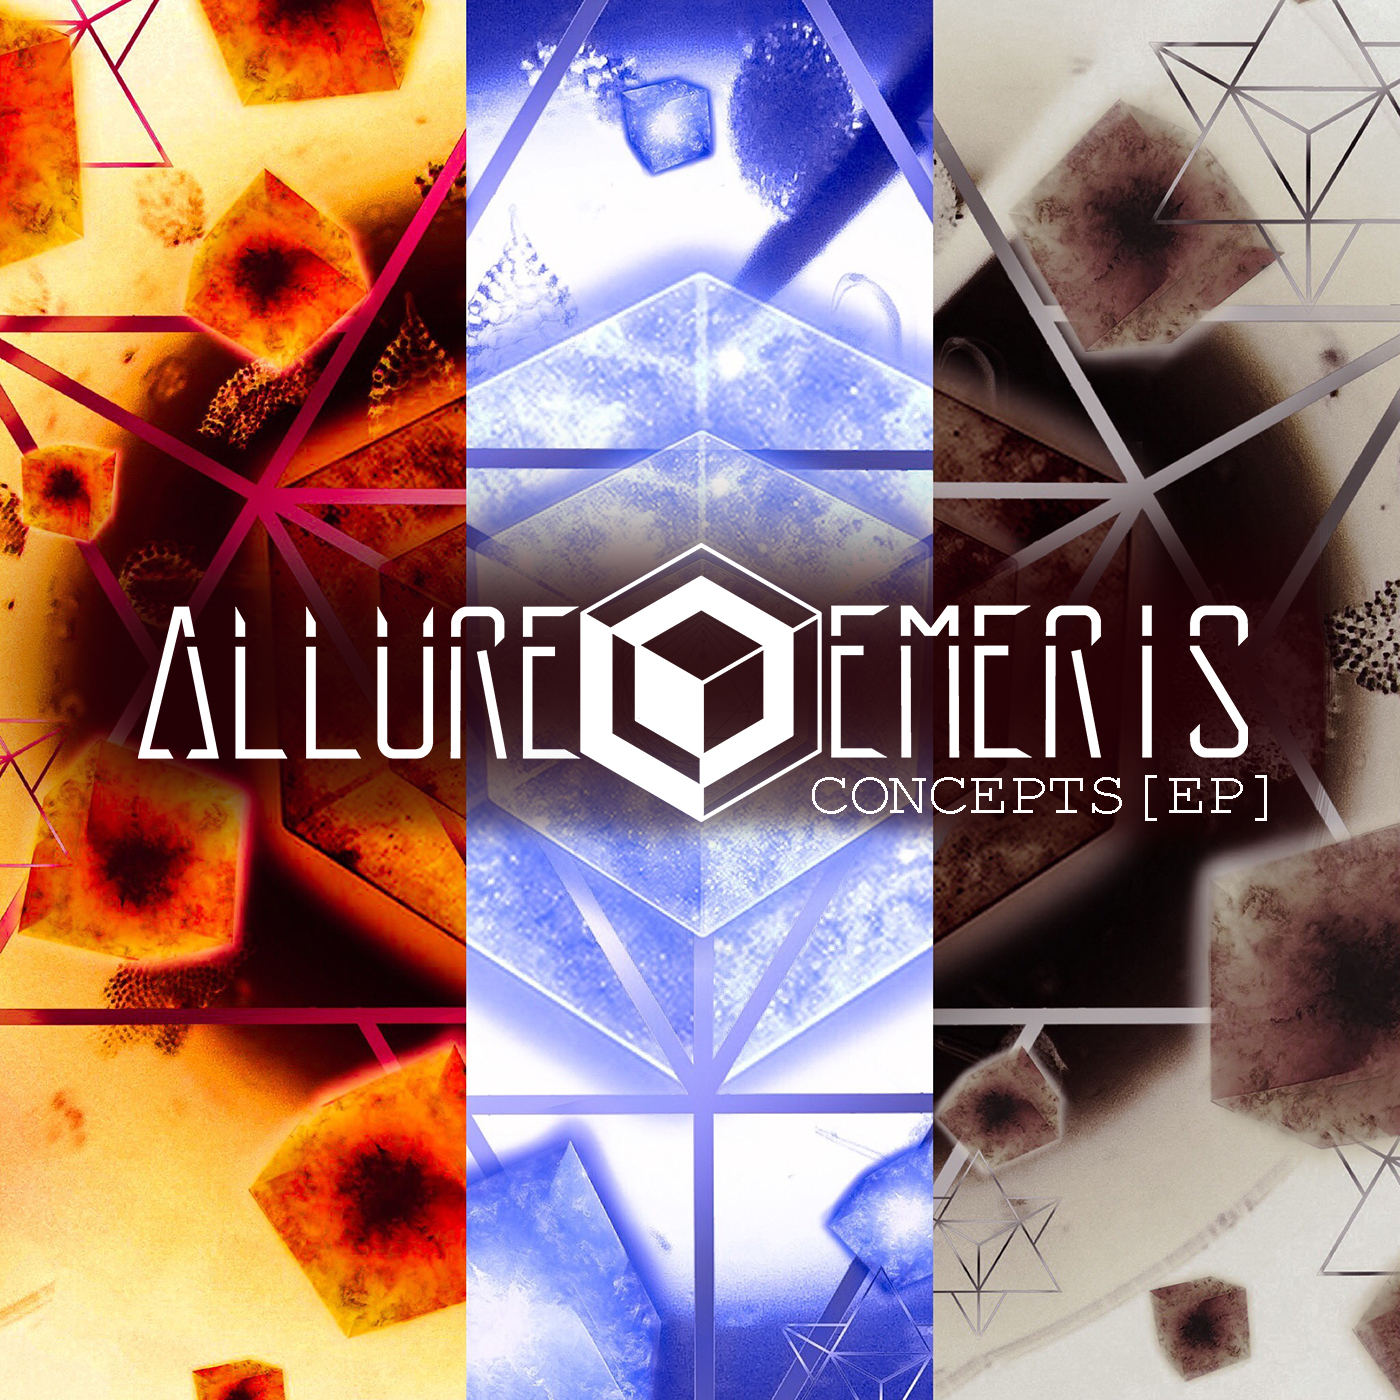 Allure Emeris - Concepts [EP]